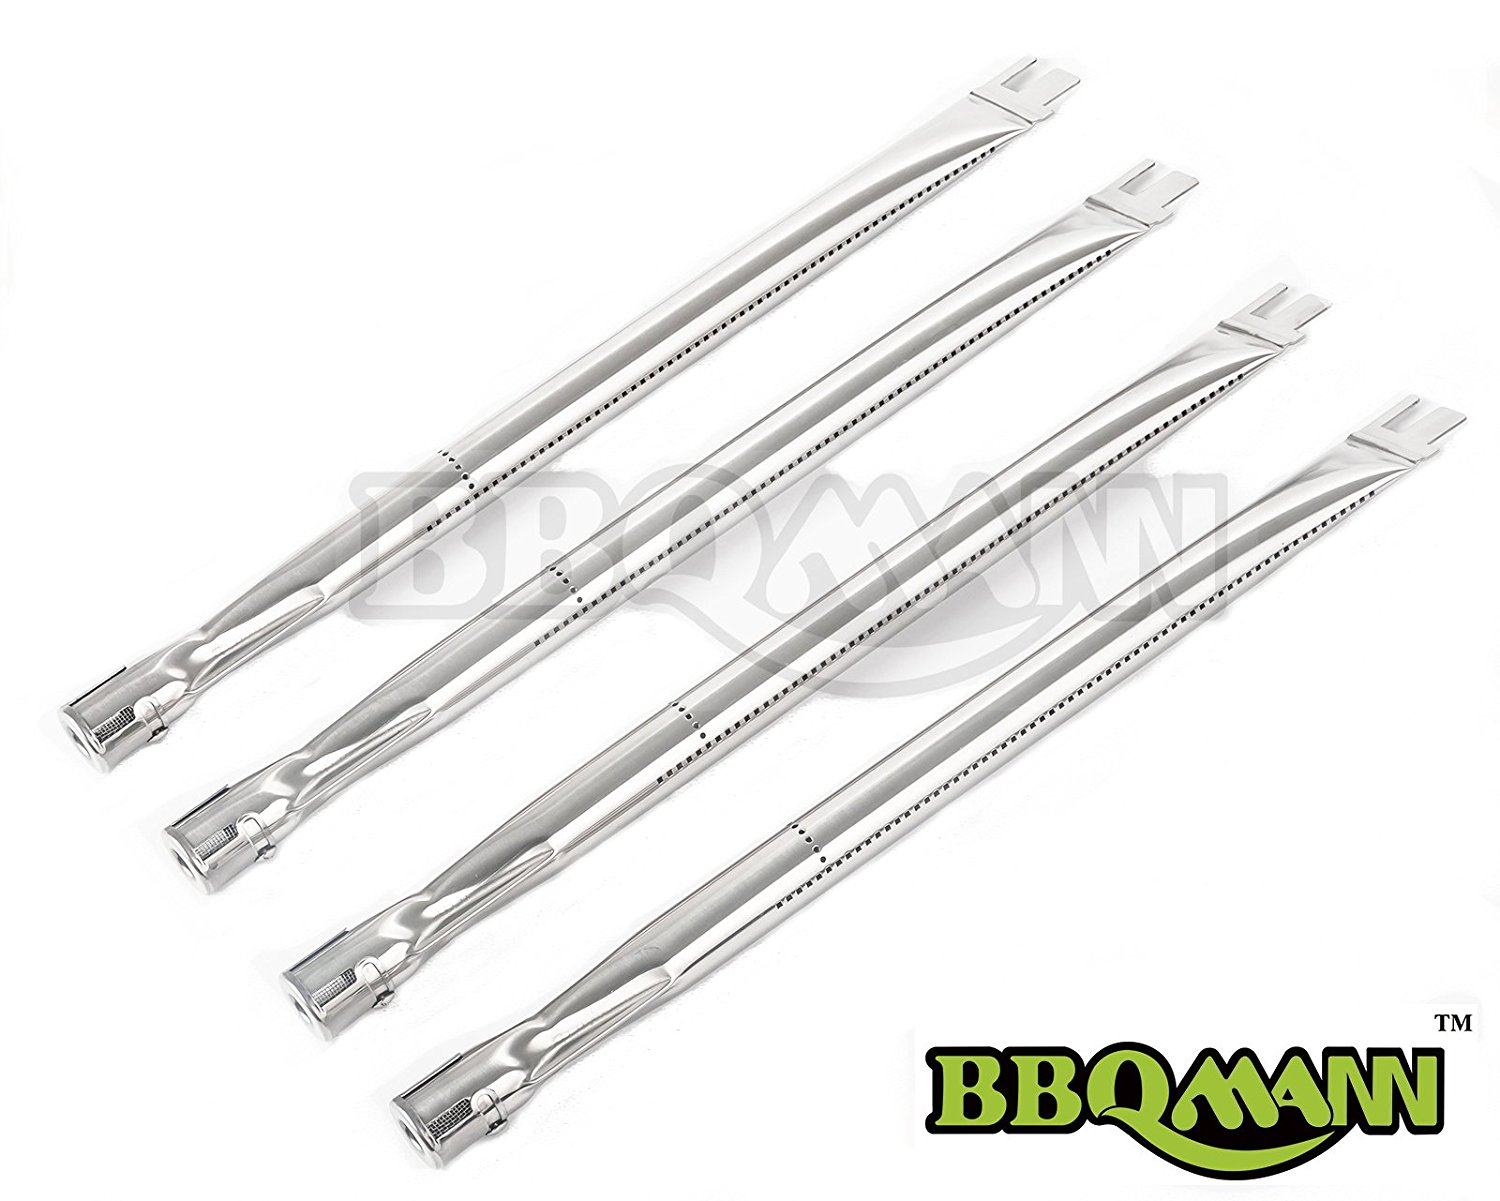 BD041 (4-pack) Replacement Straight Stainless Steel Burner